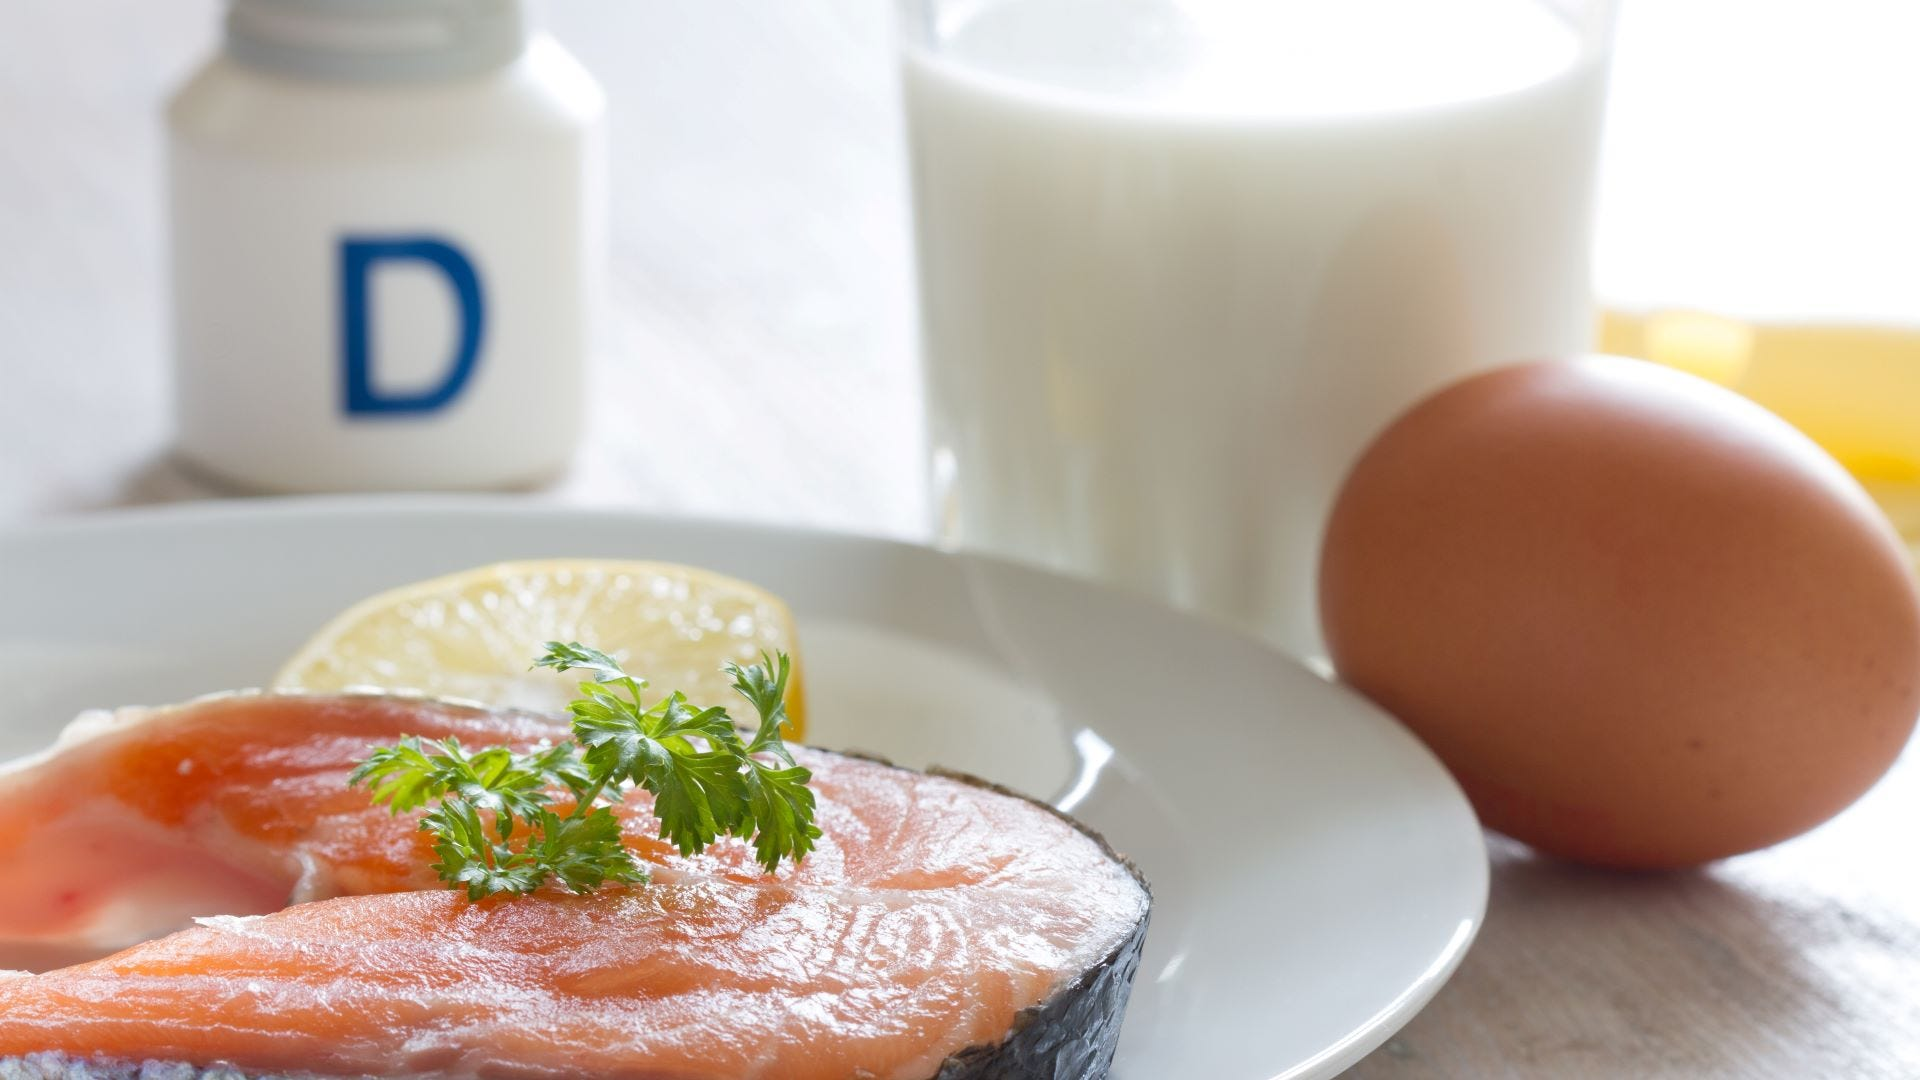 Salmon on a plate next to a glass of milk, an egg, and a bottle of vitamin D.